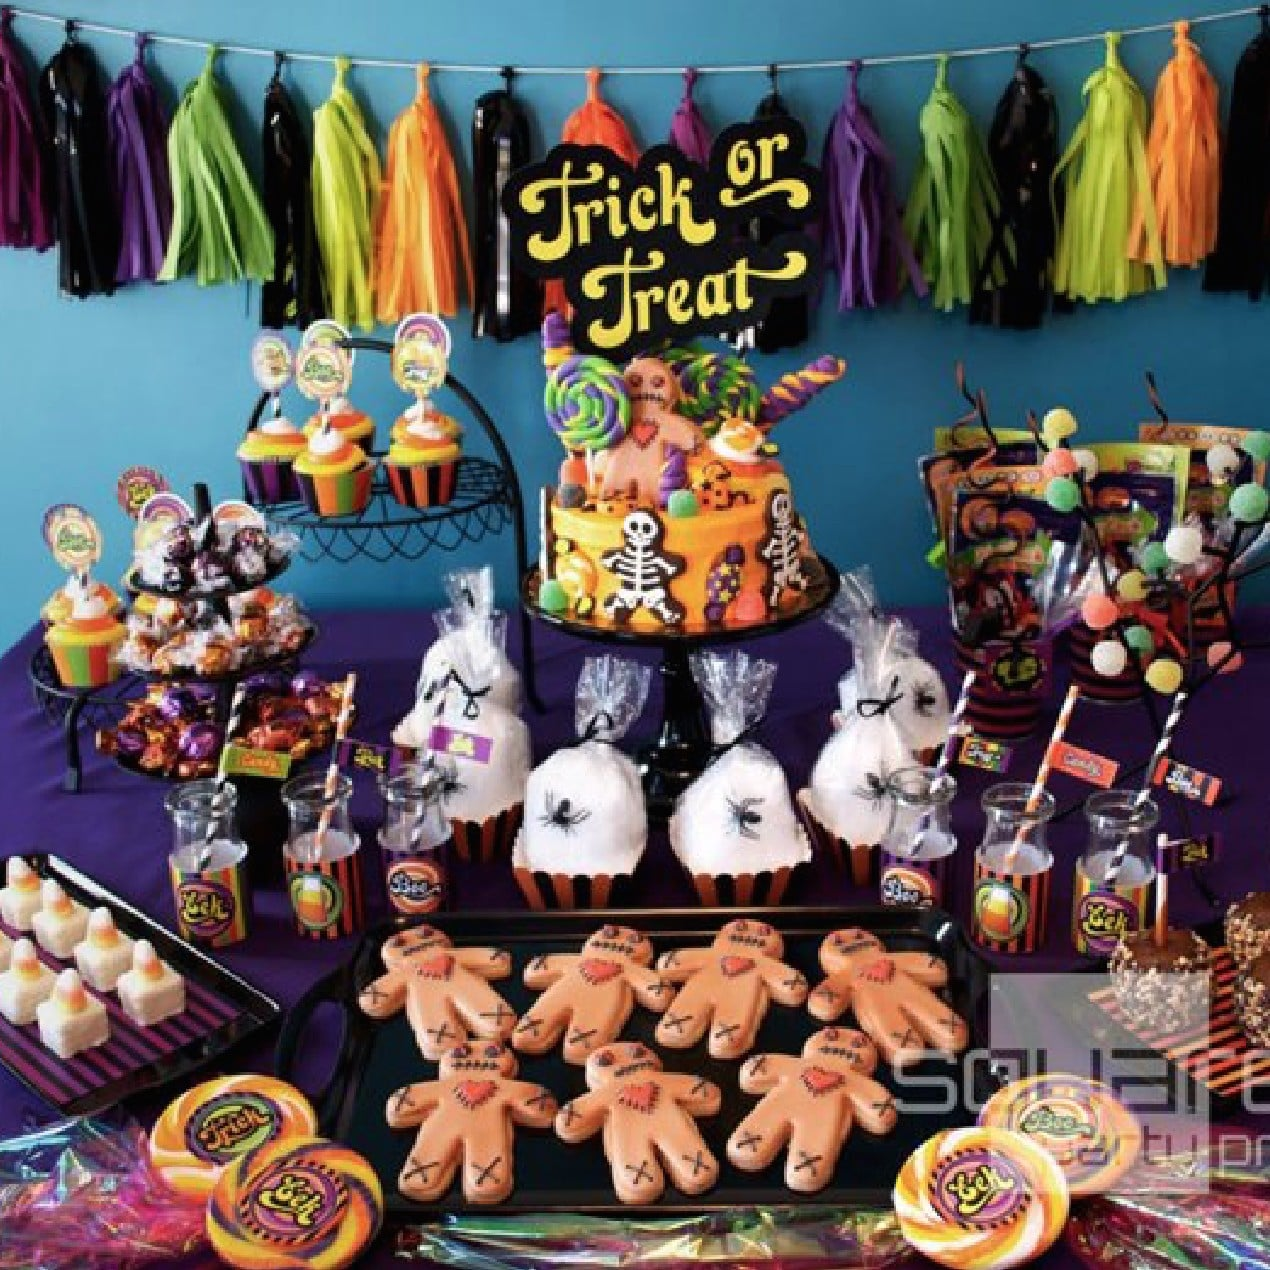 Halloween Themed Birthday Party For Toddler.Kid Friendly Halloween Party Ideas Popsugar Family